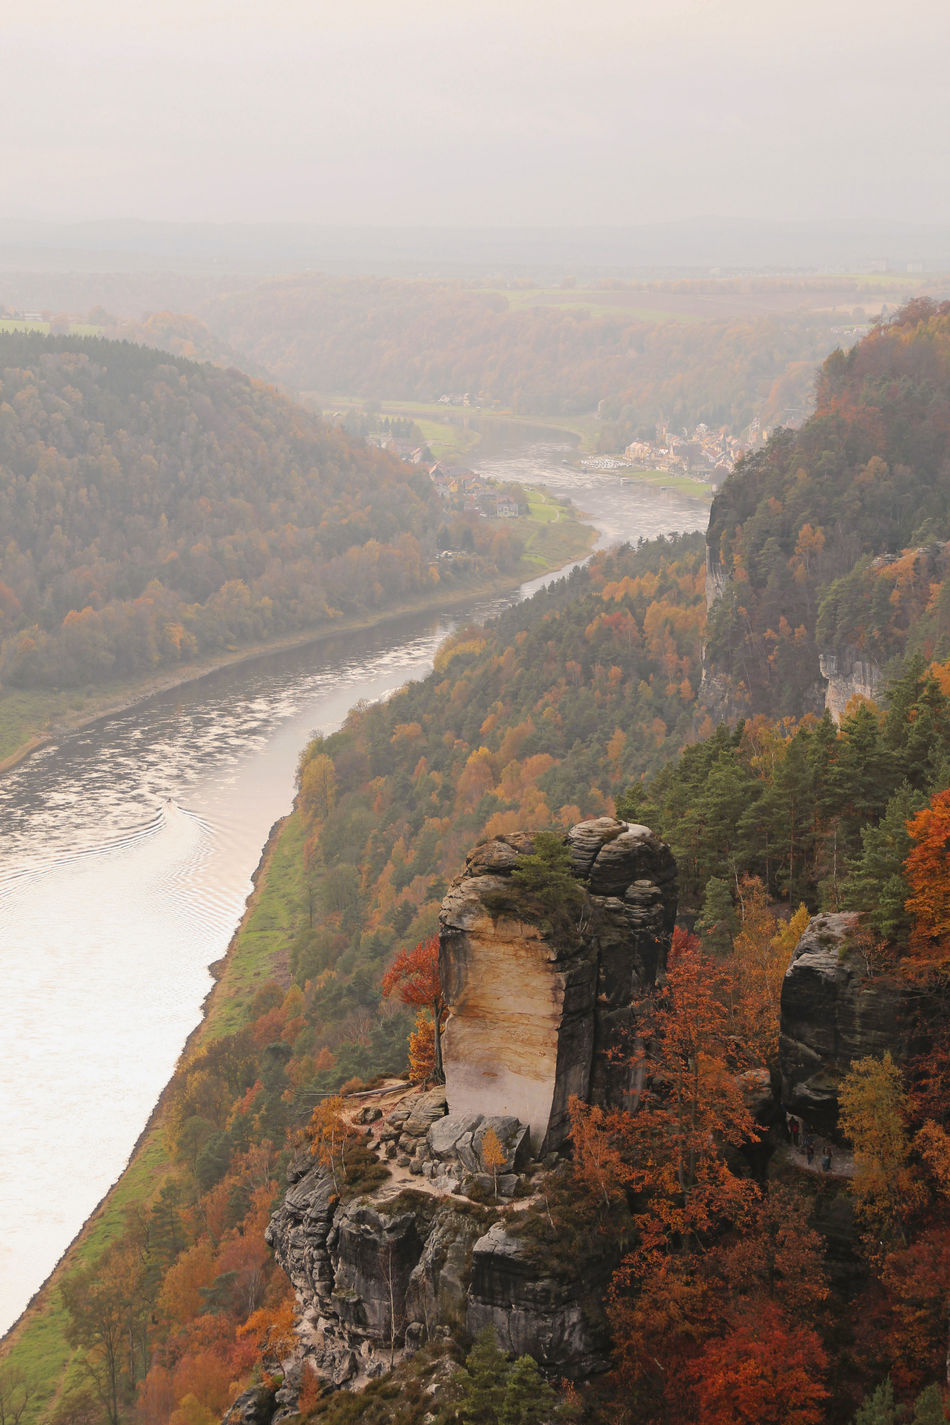 View from the Bastei Autumn Autumn Collection Autumn Colors Autumn🍁🍁🍁 Bastei Beauty In Nature Climbing Rocks Day Elbe Elbe River Landscape Mountain Nature No People Outdoors Rathen Rock Rock Formation Saxon Switzerland Scenics Water